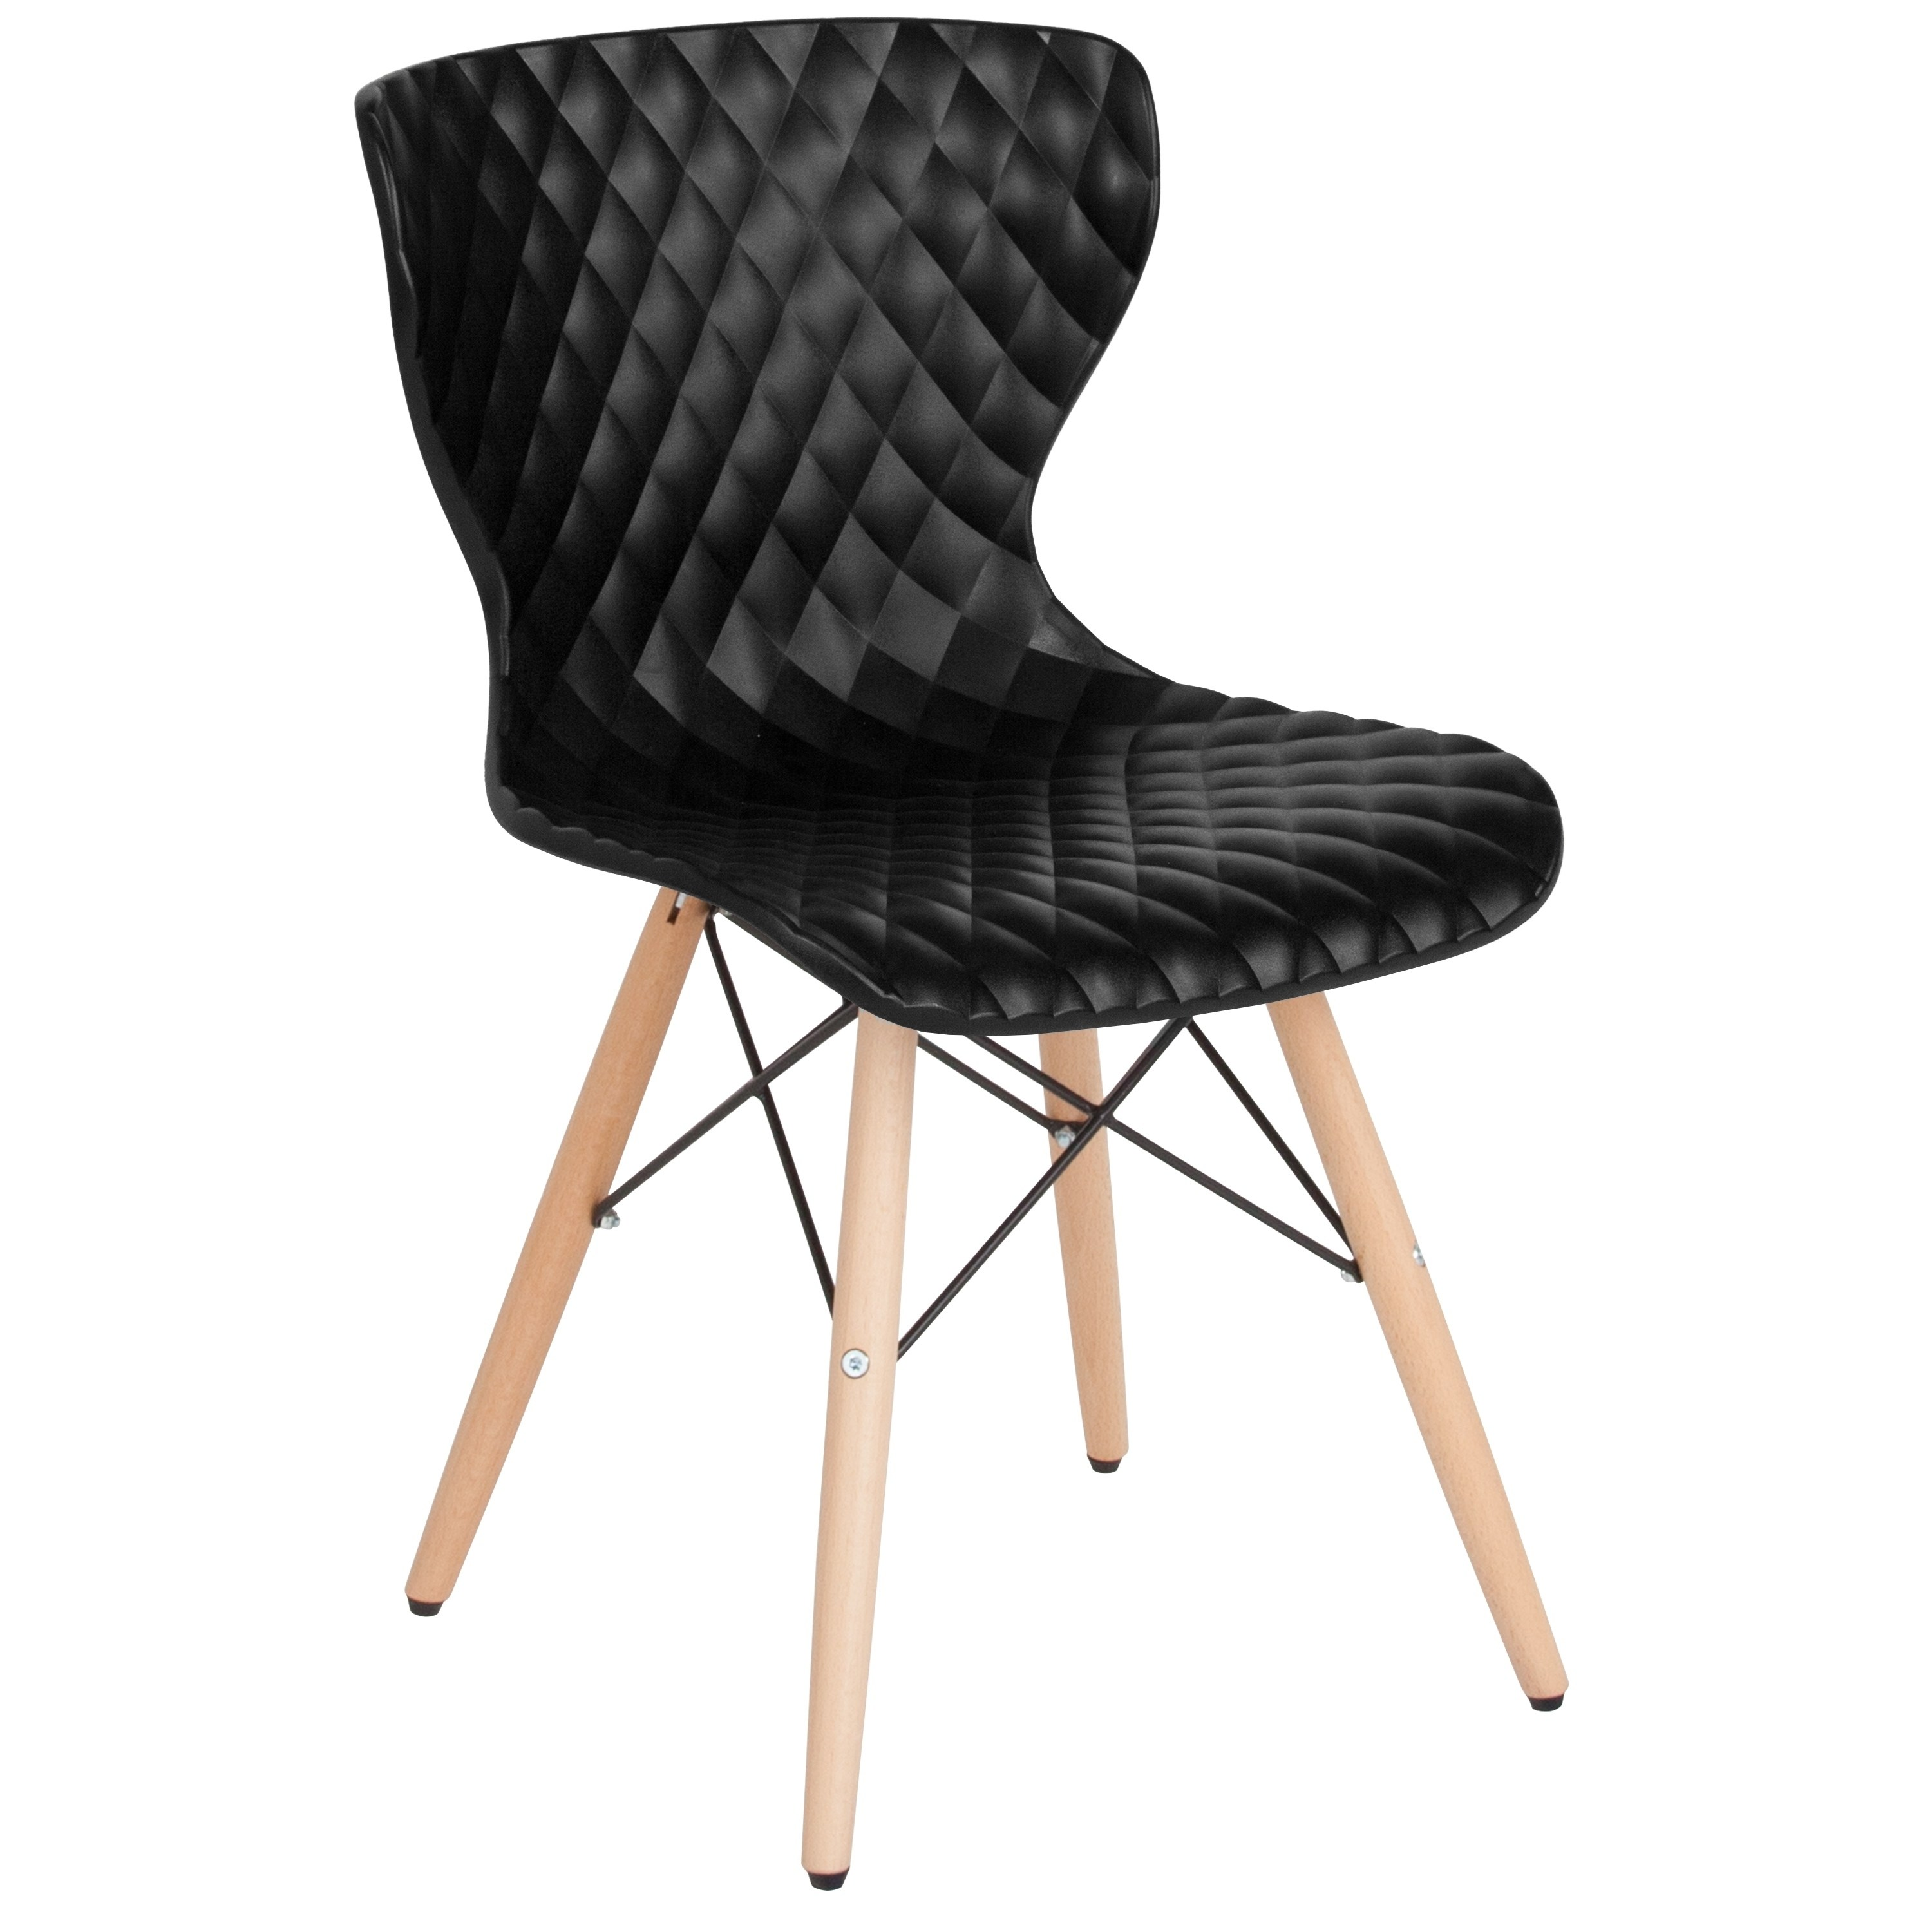 Lancaster Home Bedford Contemporary Design Plastic Chair with Wooden Legs